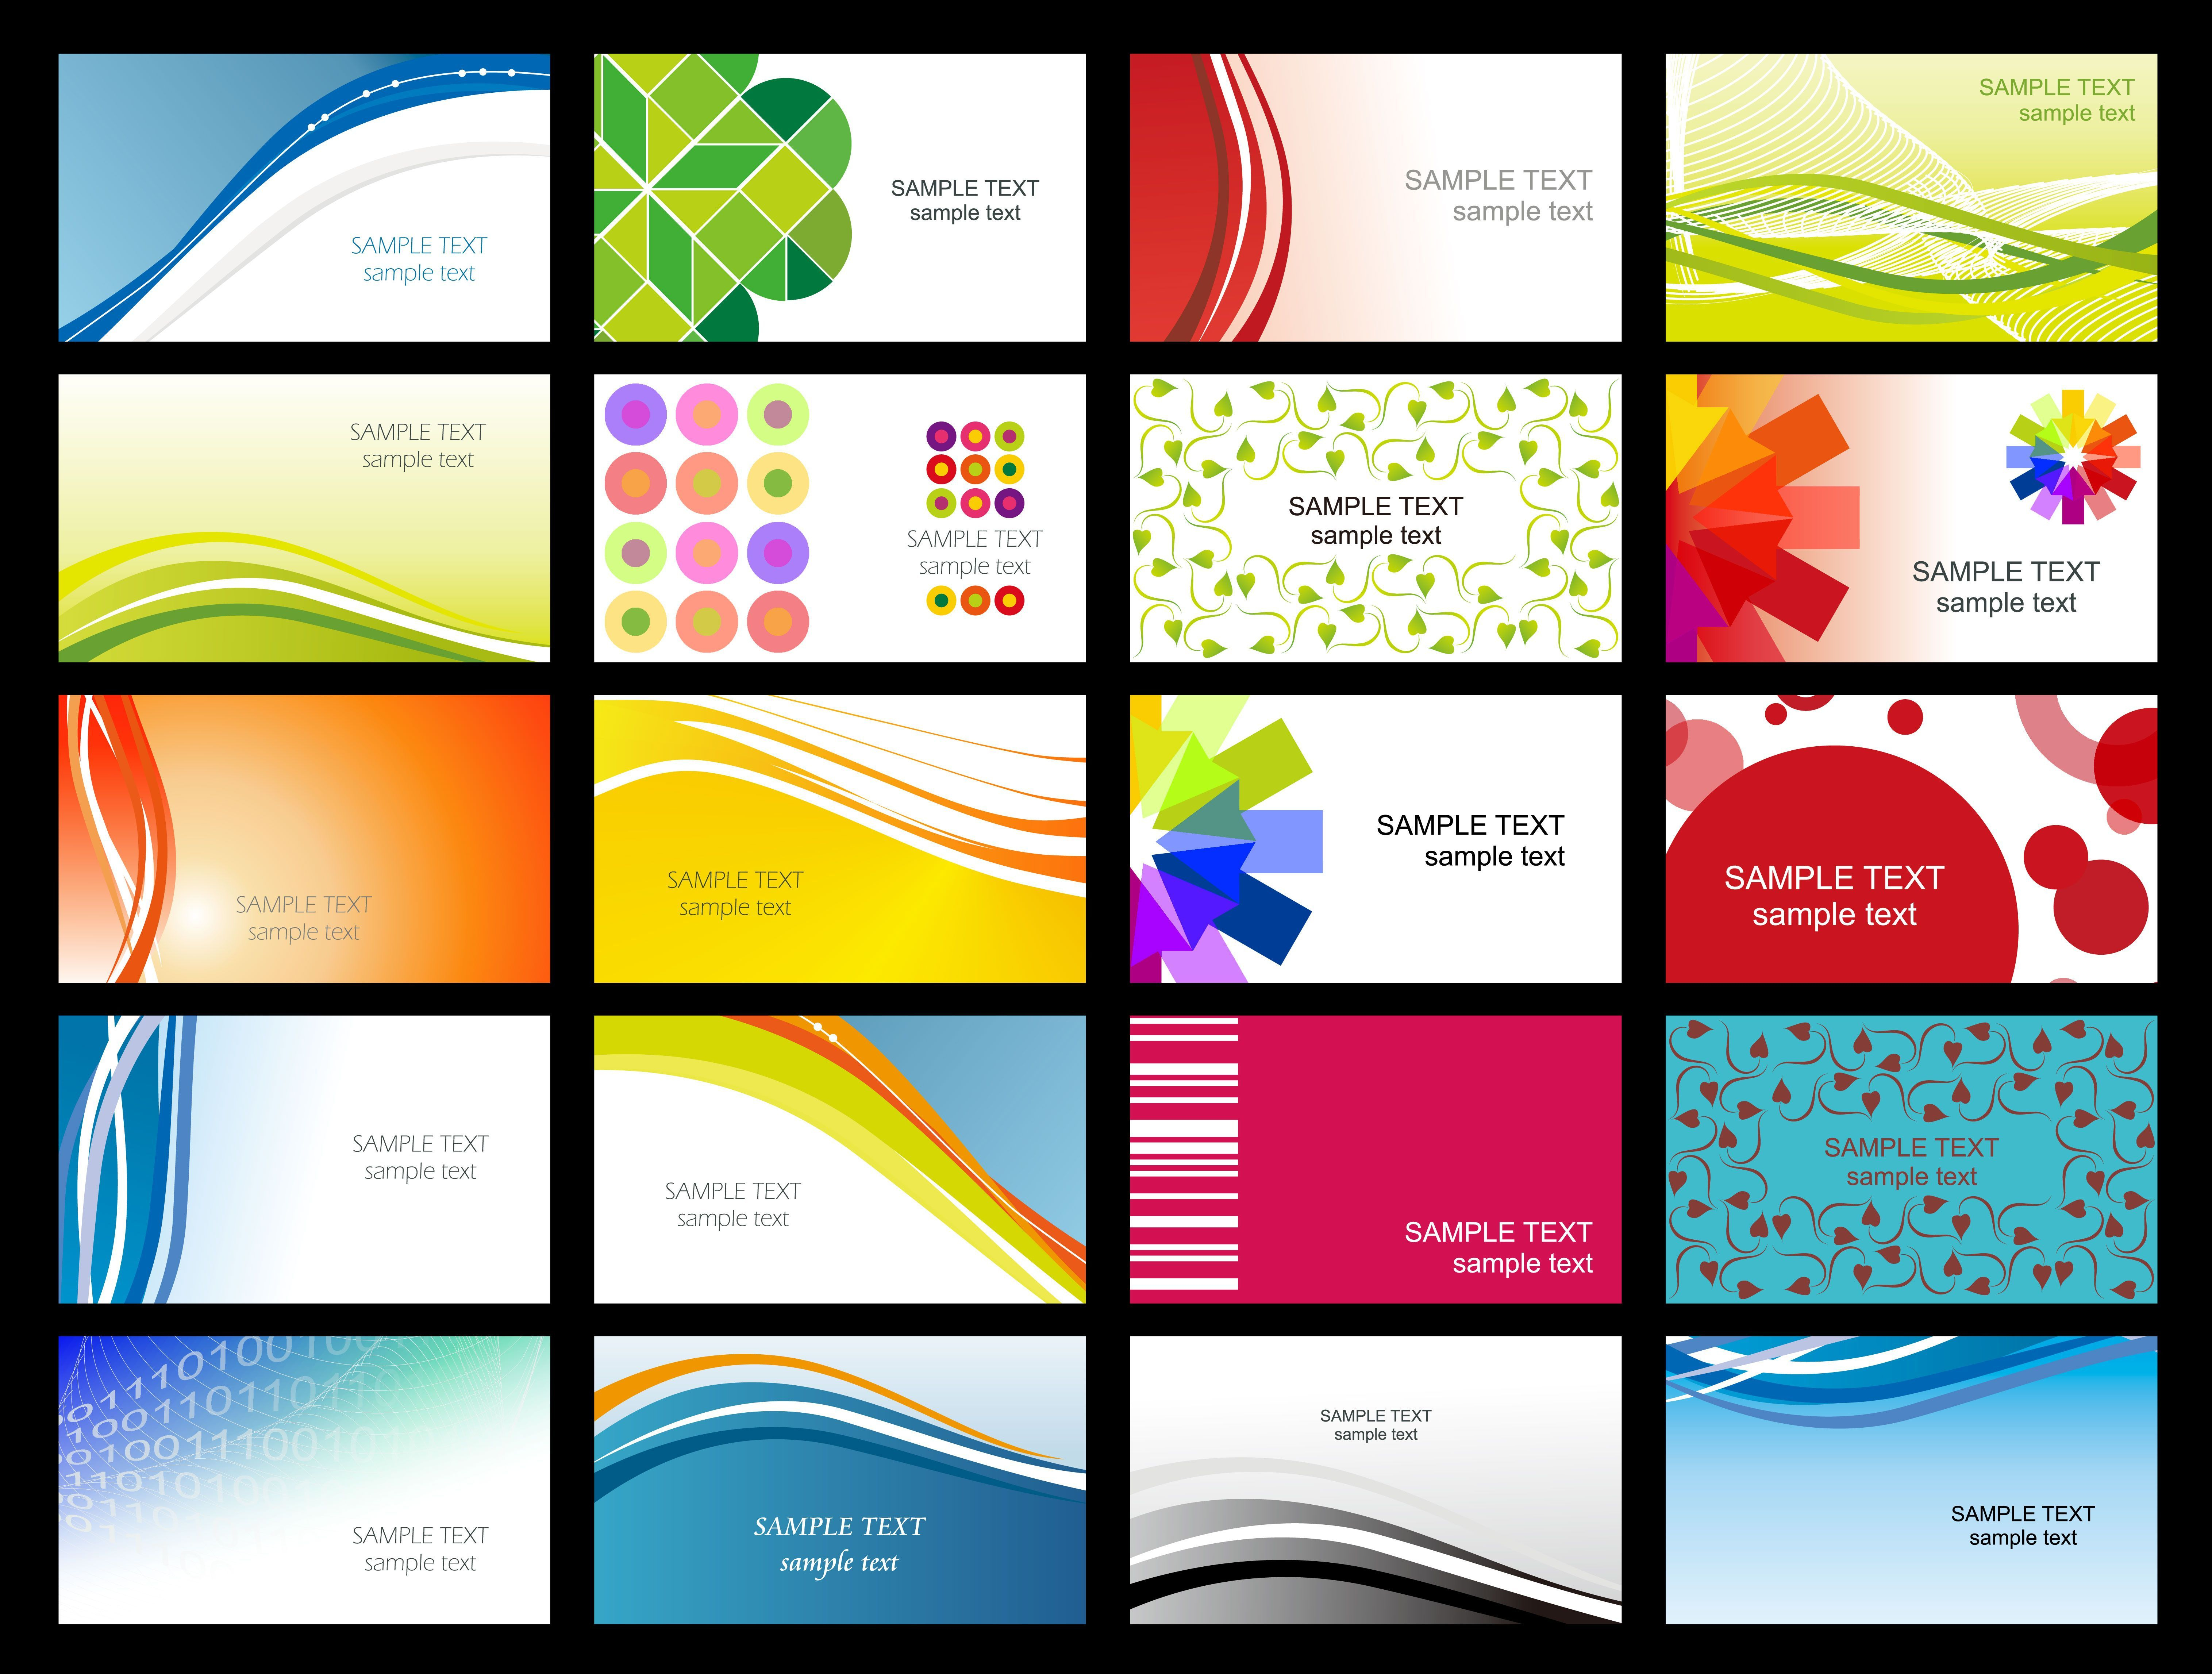 Pinanggunstore On Business Cardsbusinesscardsdesignideas - Free Printable Business Cards Online